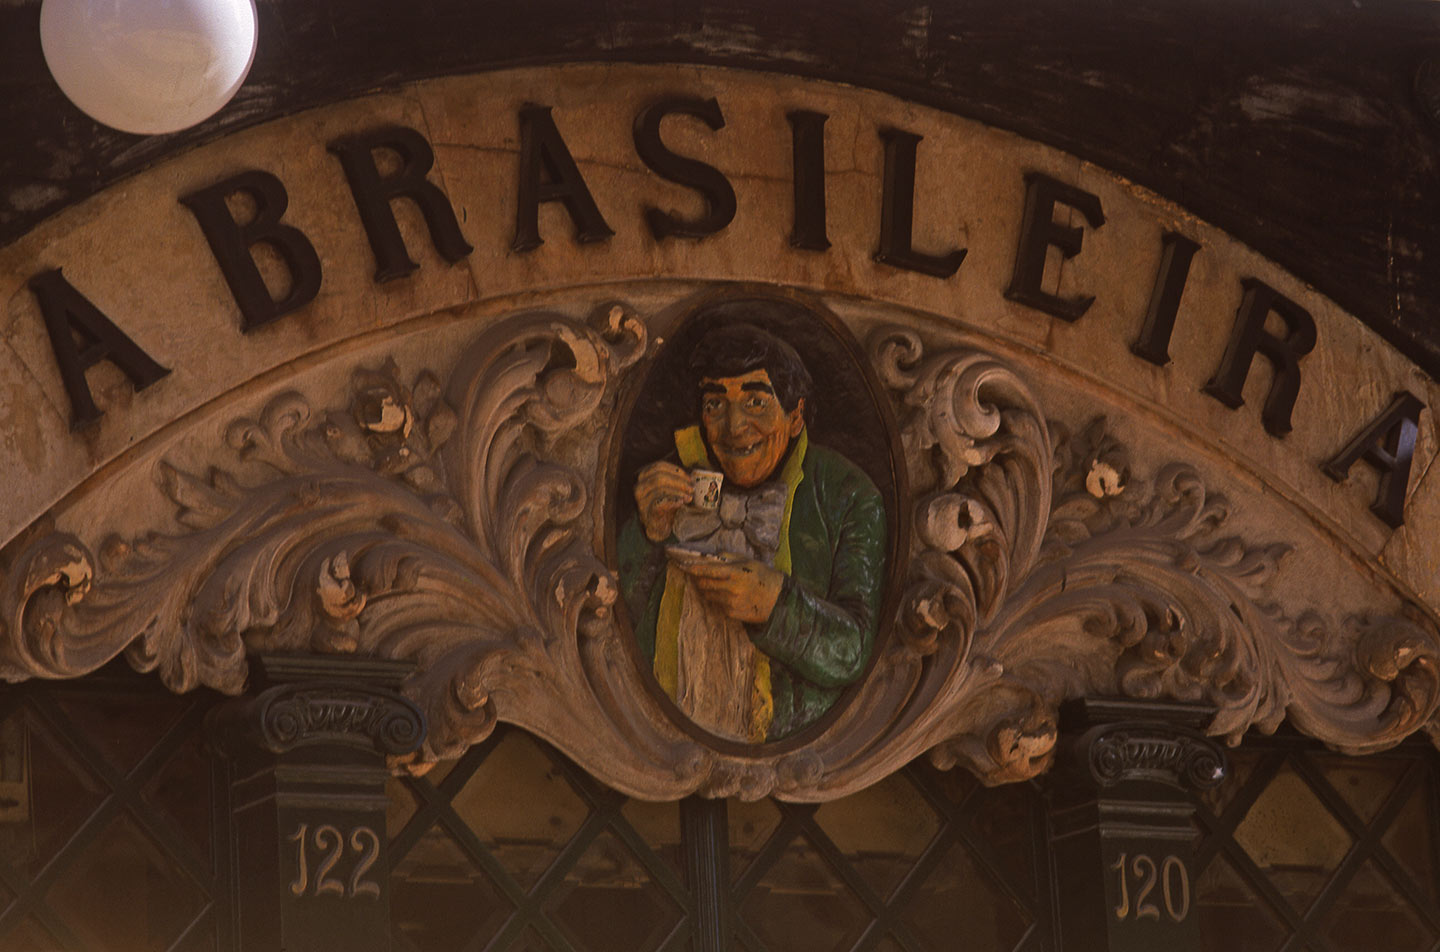 Image of the A Brasileira cafe sign in Lisbon